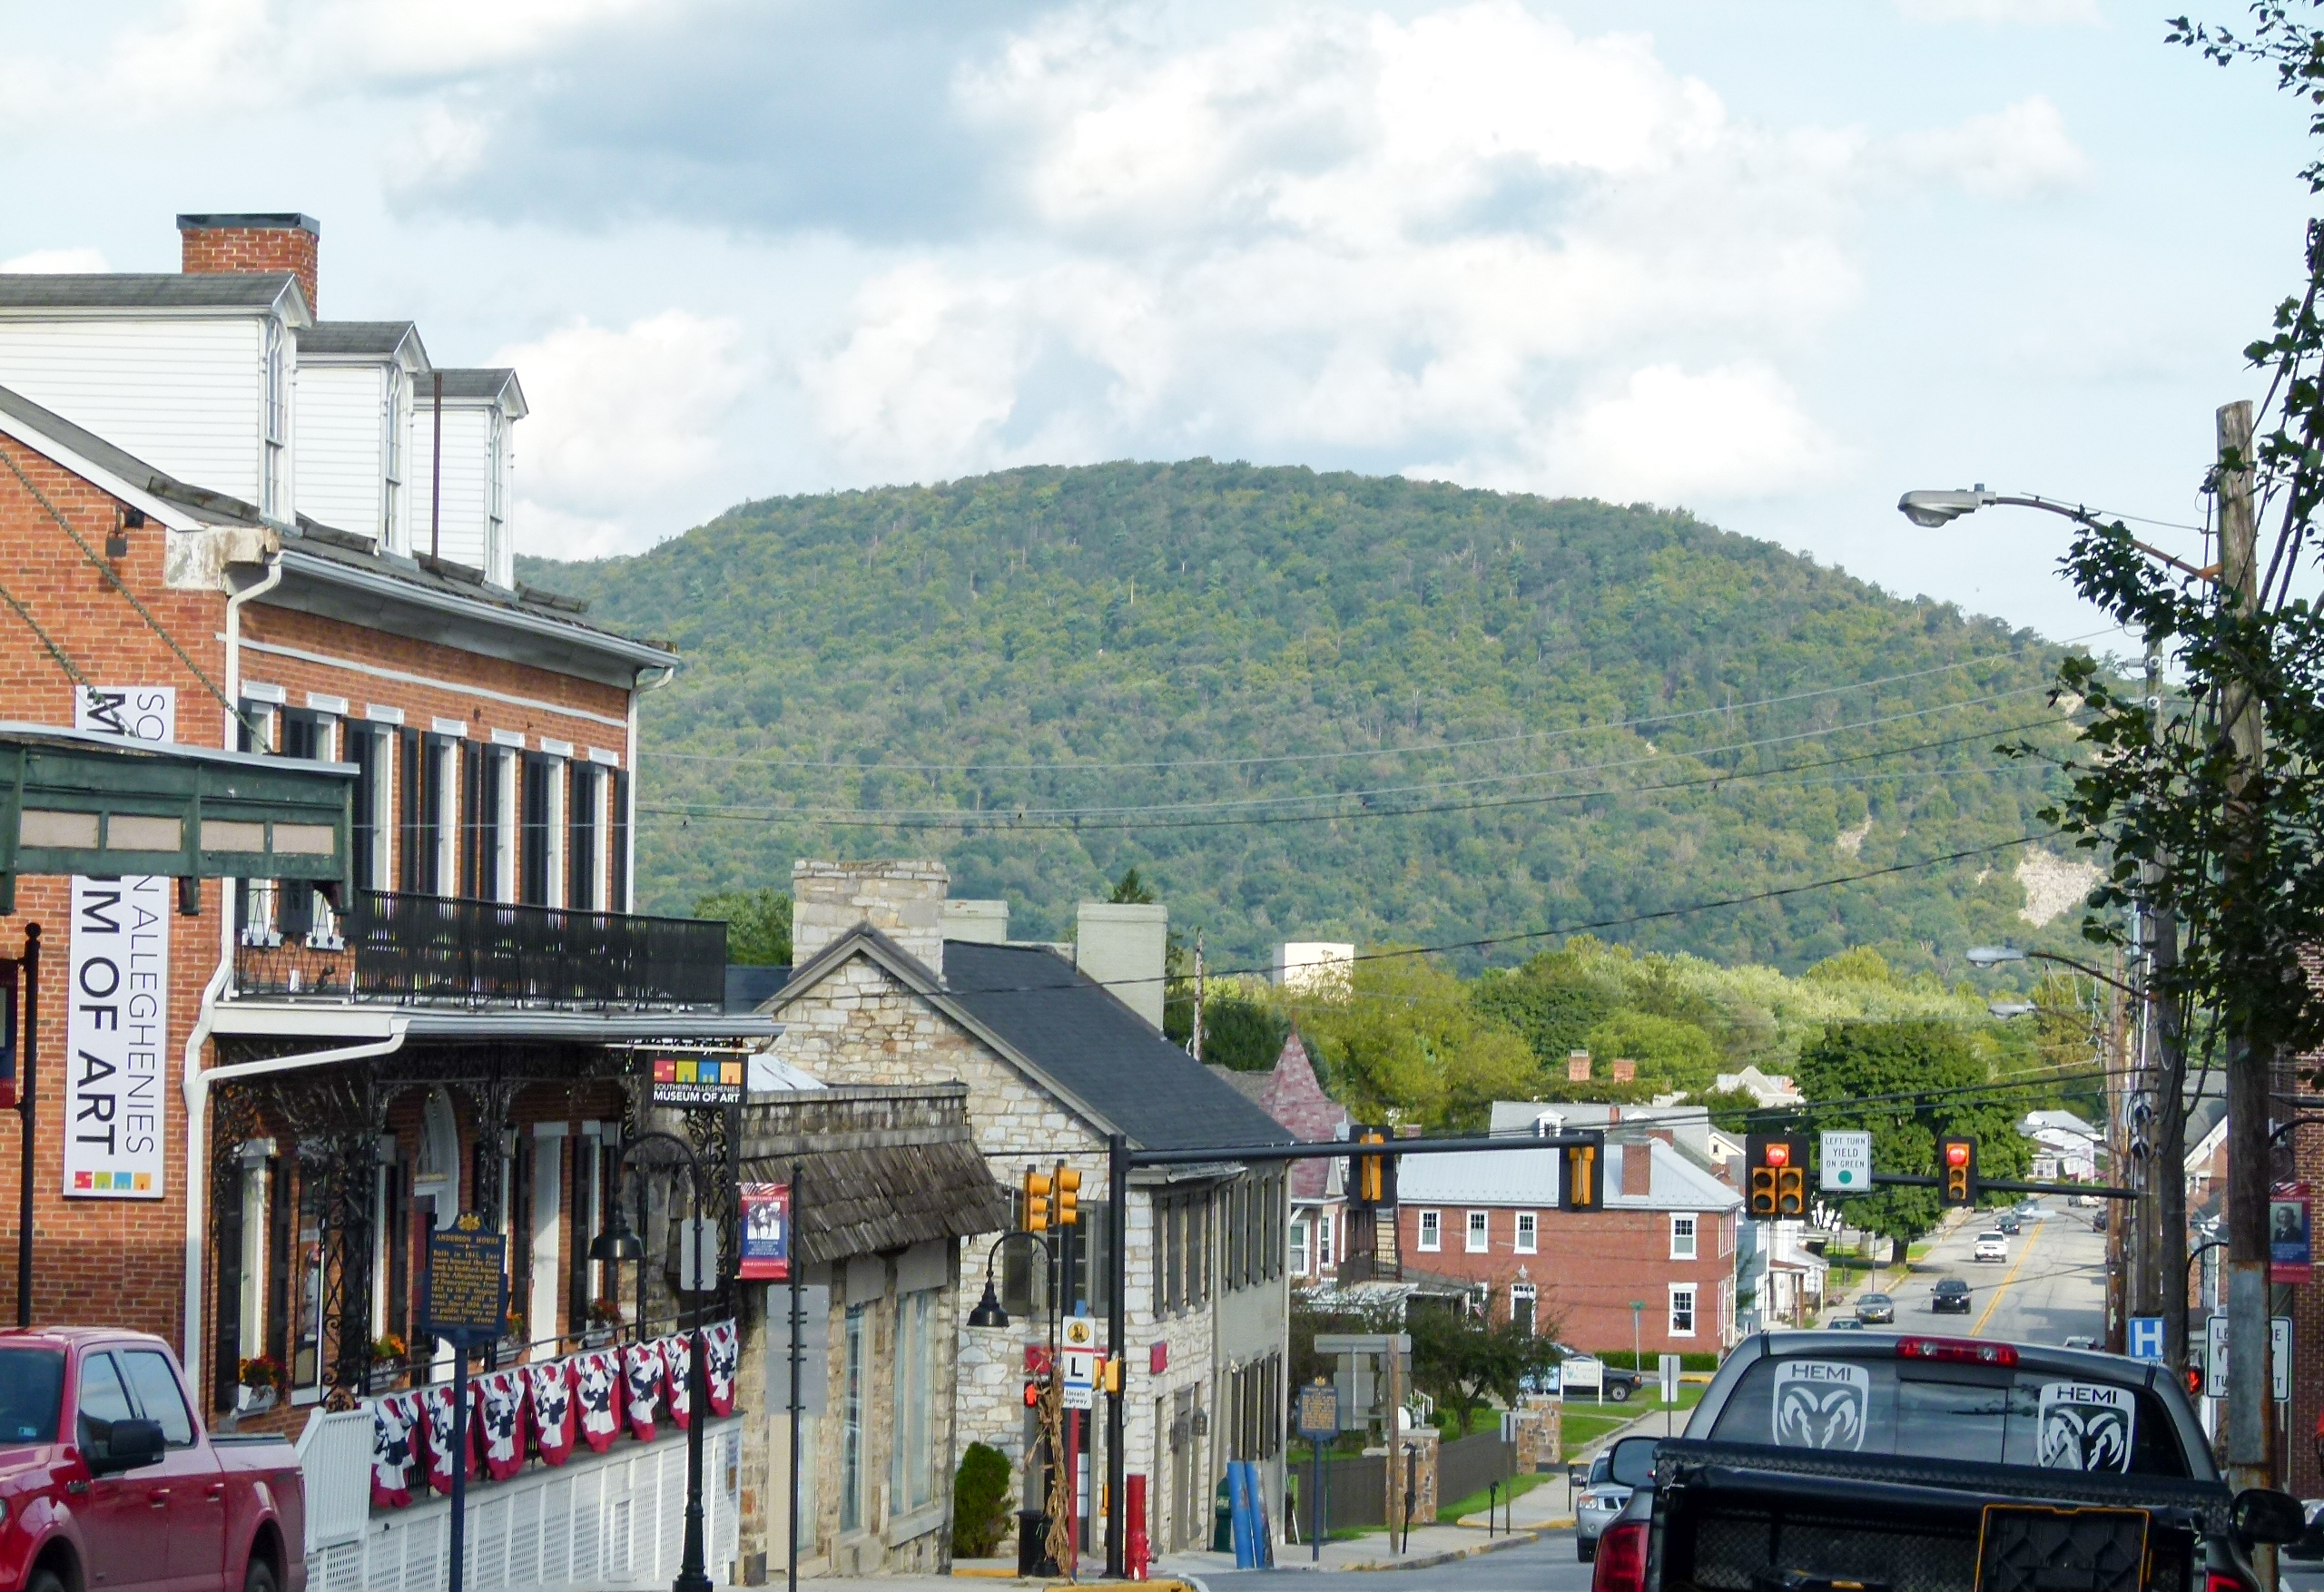 The town of Bedford is nestled in the mountains.